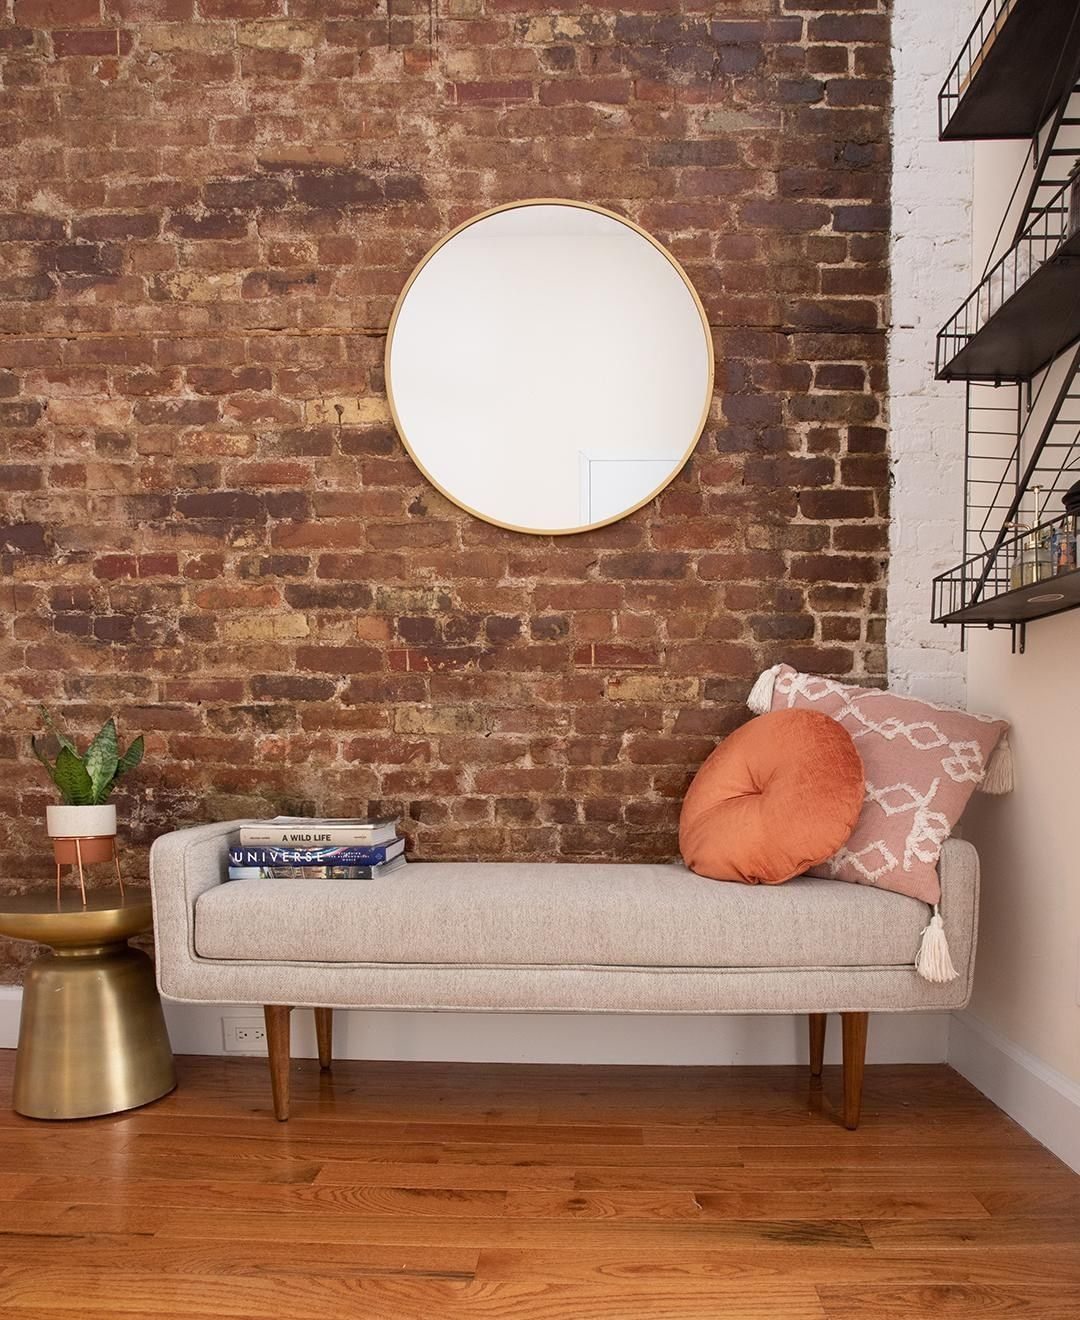 This warm East Village, NYC home is full of fun Craigslist